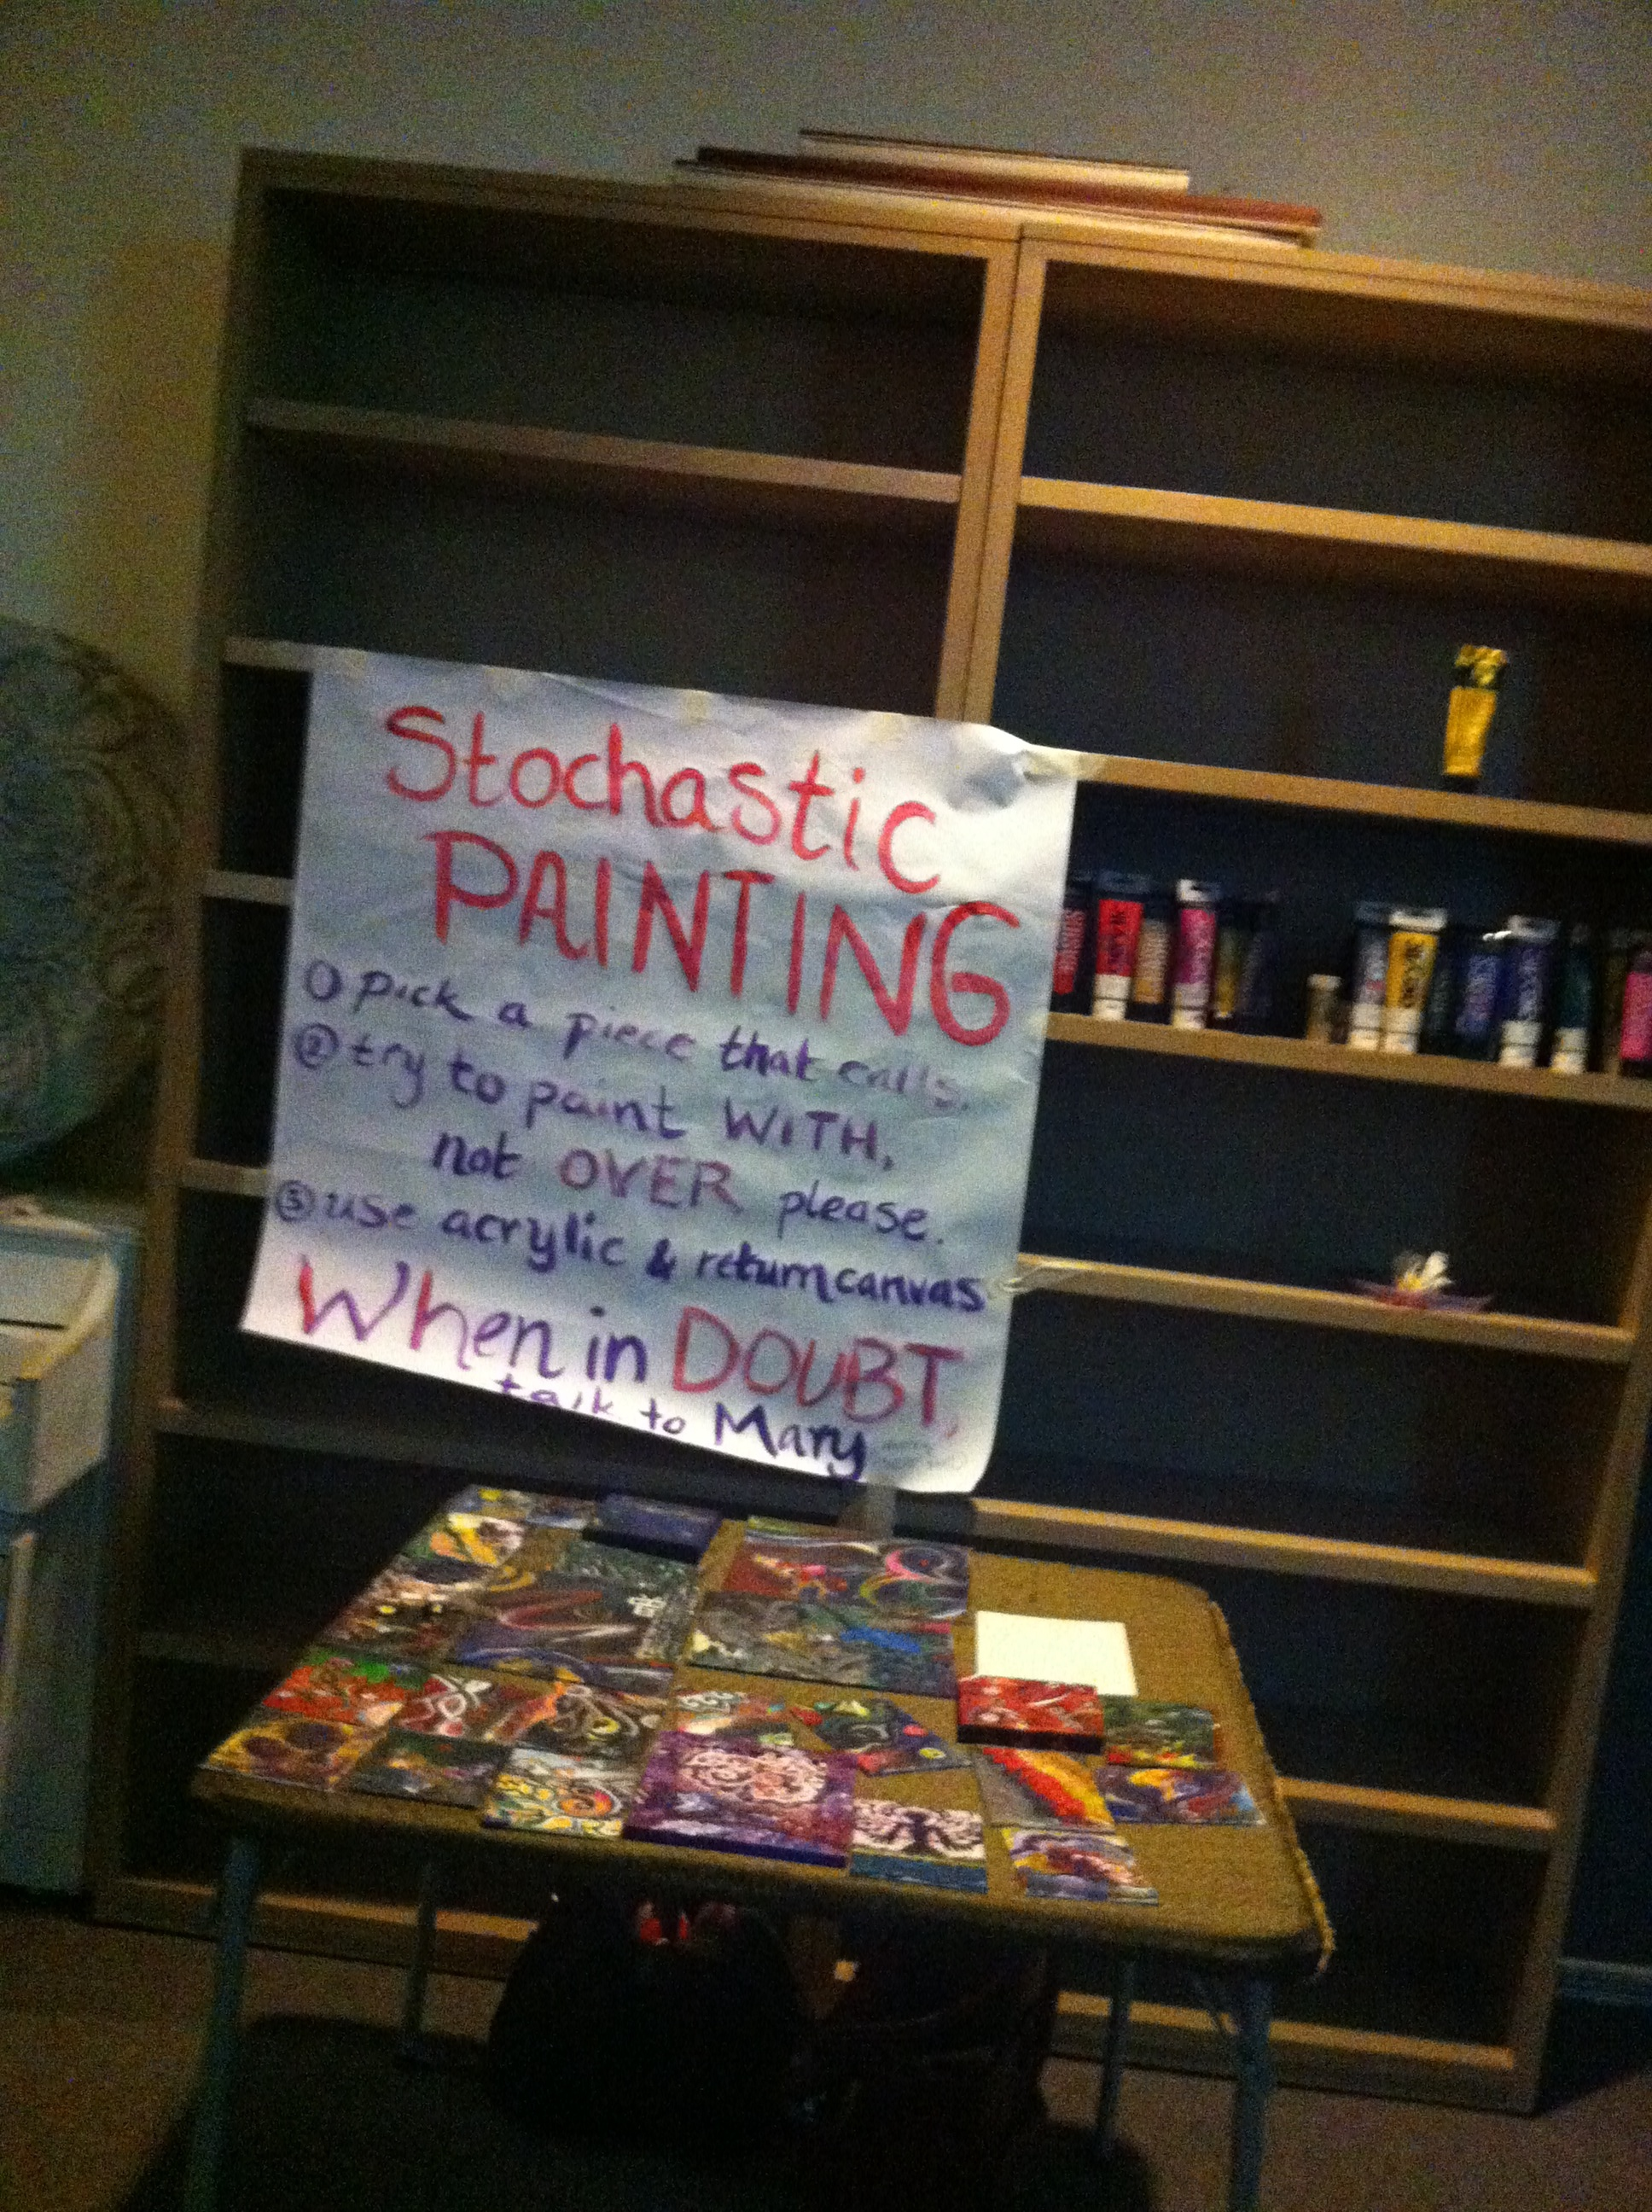 Stochaistic Painting